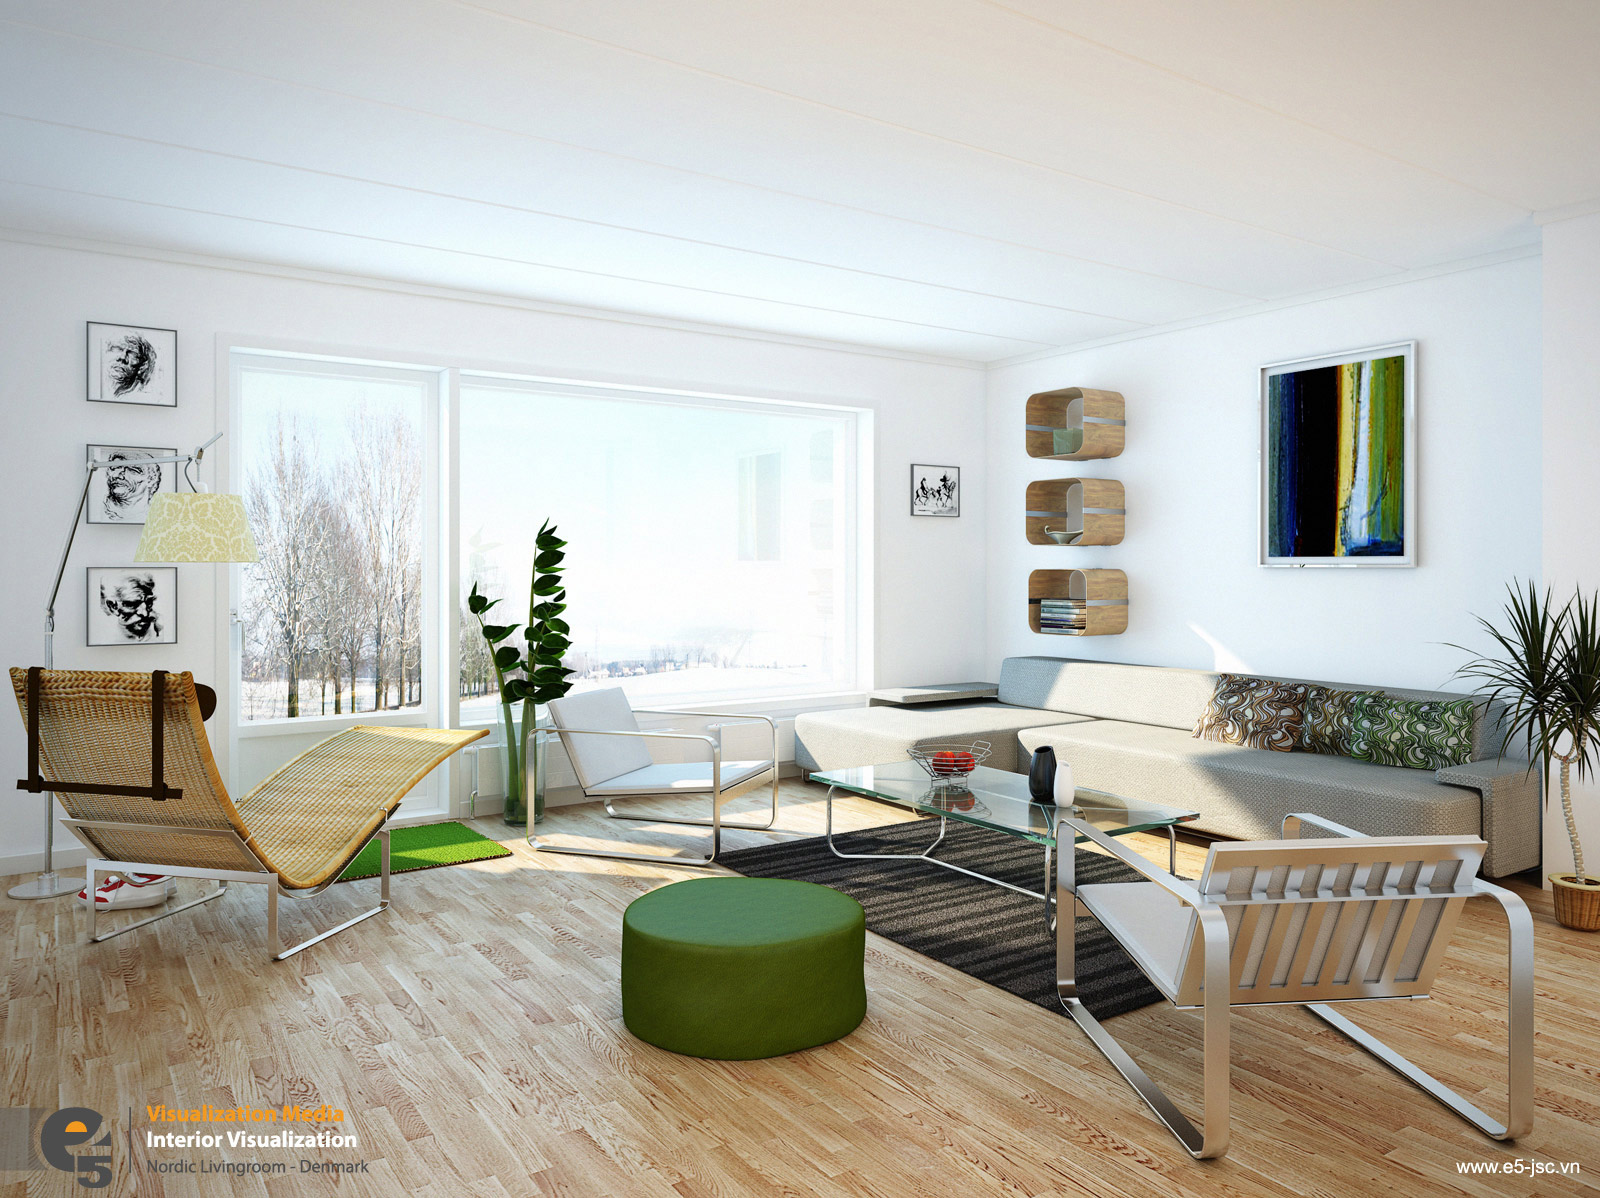 about furnishing your living room white here are some ideas